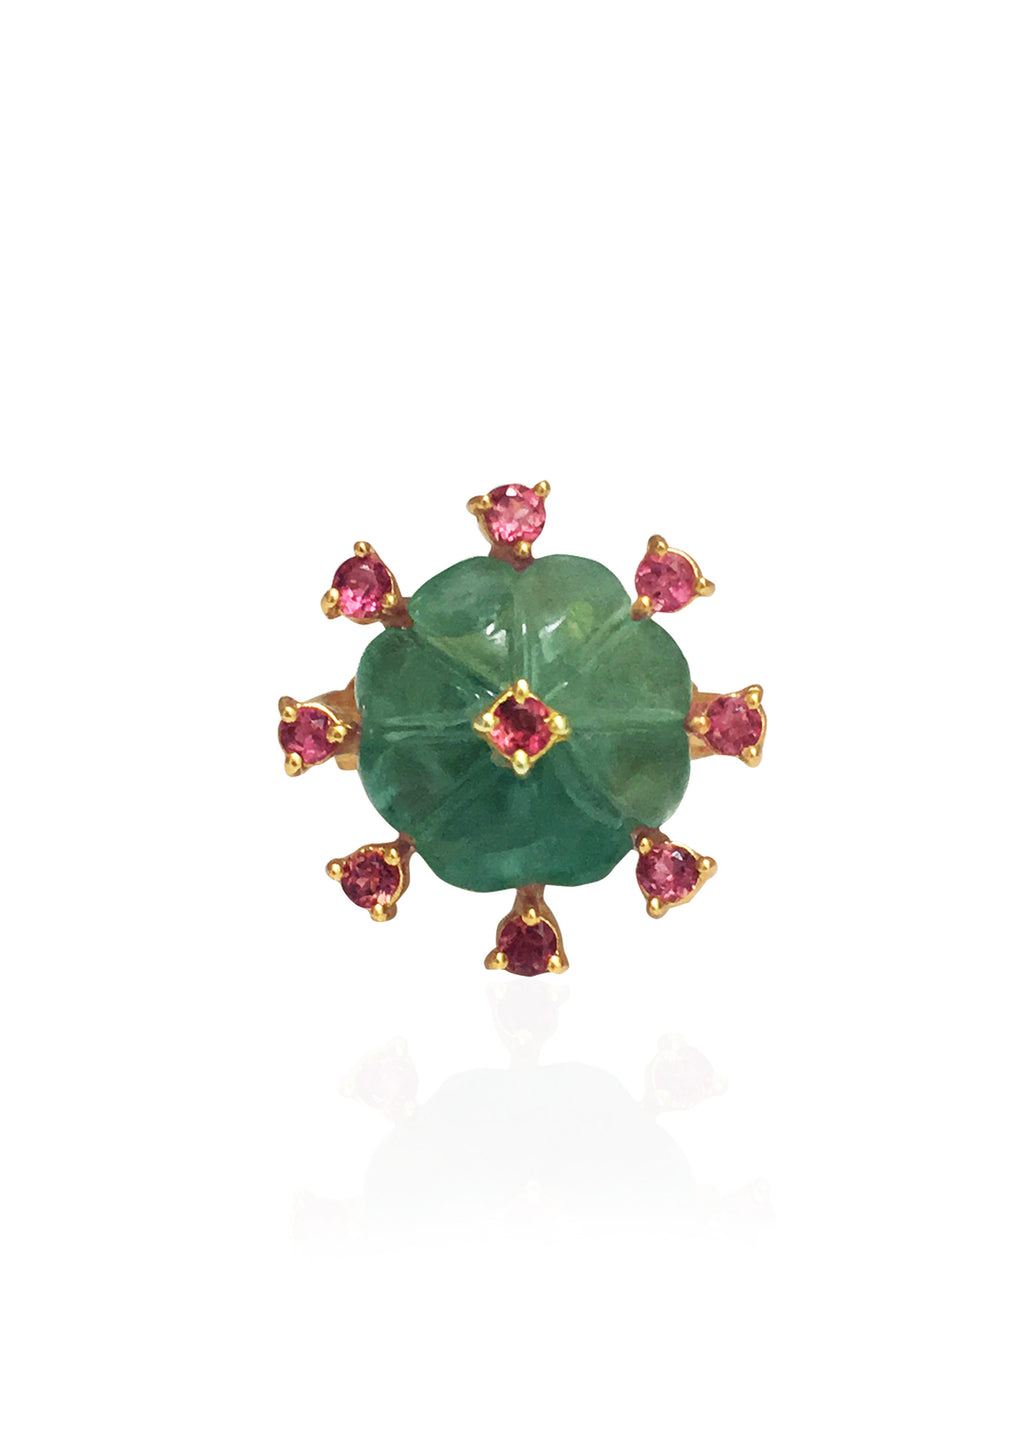 Fluorite and Tourmaline Ring with a dark pink enamel band